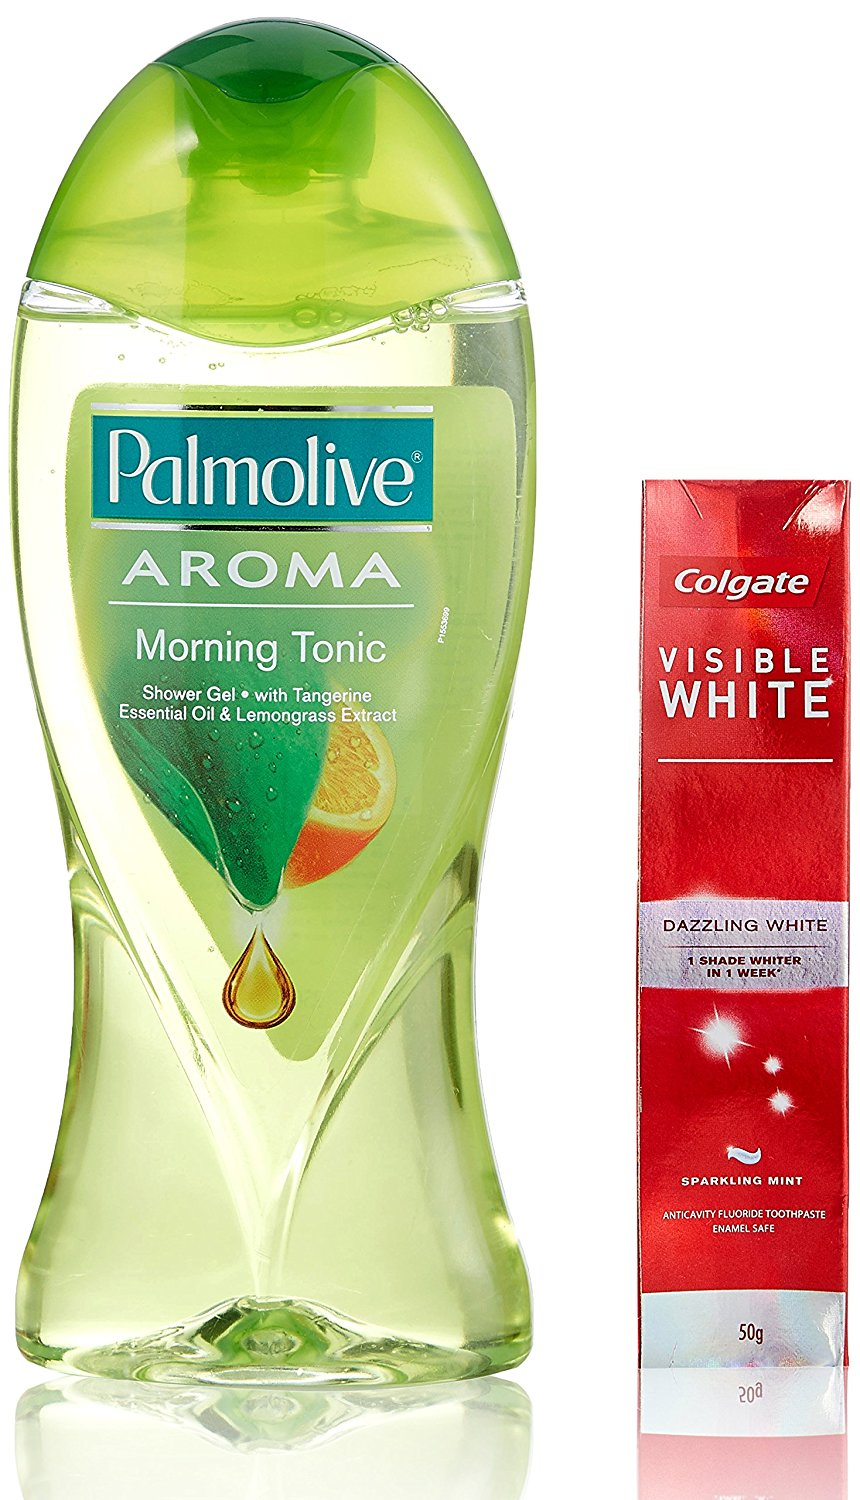 5d1841a9955 Palmolive-Aroma-Therapy-Morning-Tonic-Shower-Gel-250ml-with-Free-Colgate-Visible-White-50g- Rs-119-only-amazon.jpg